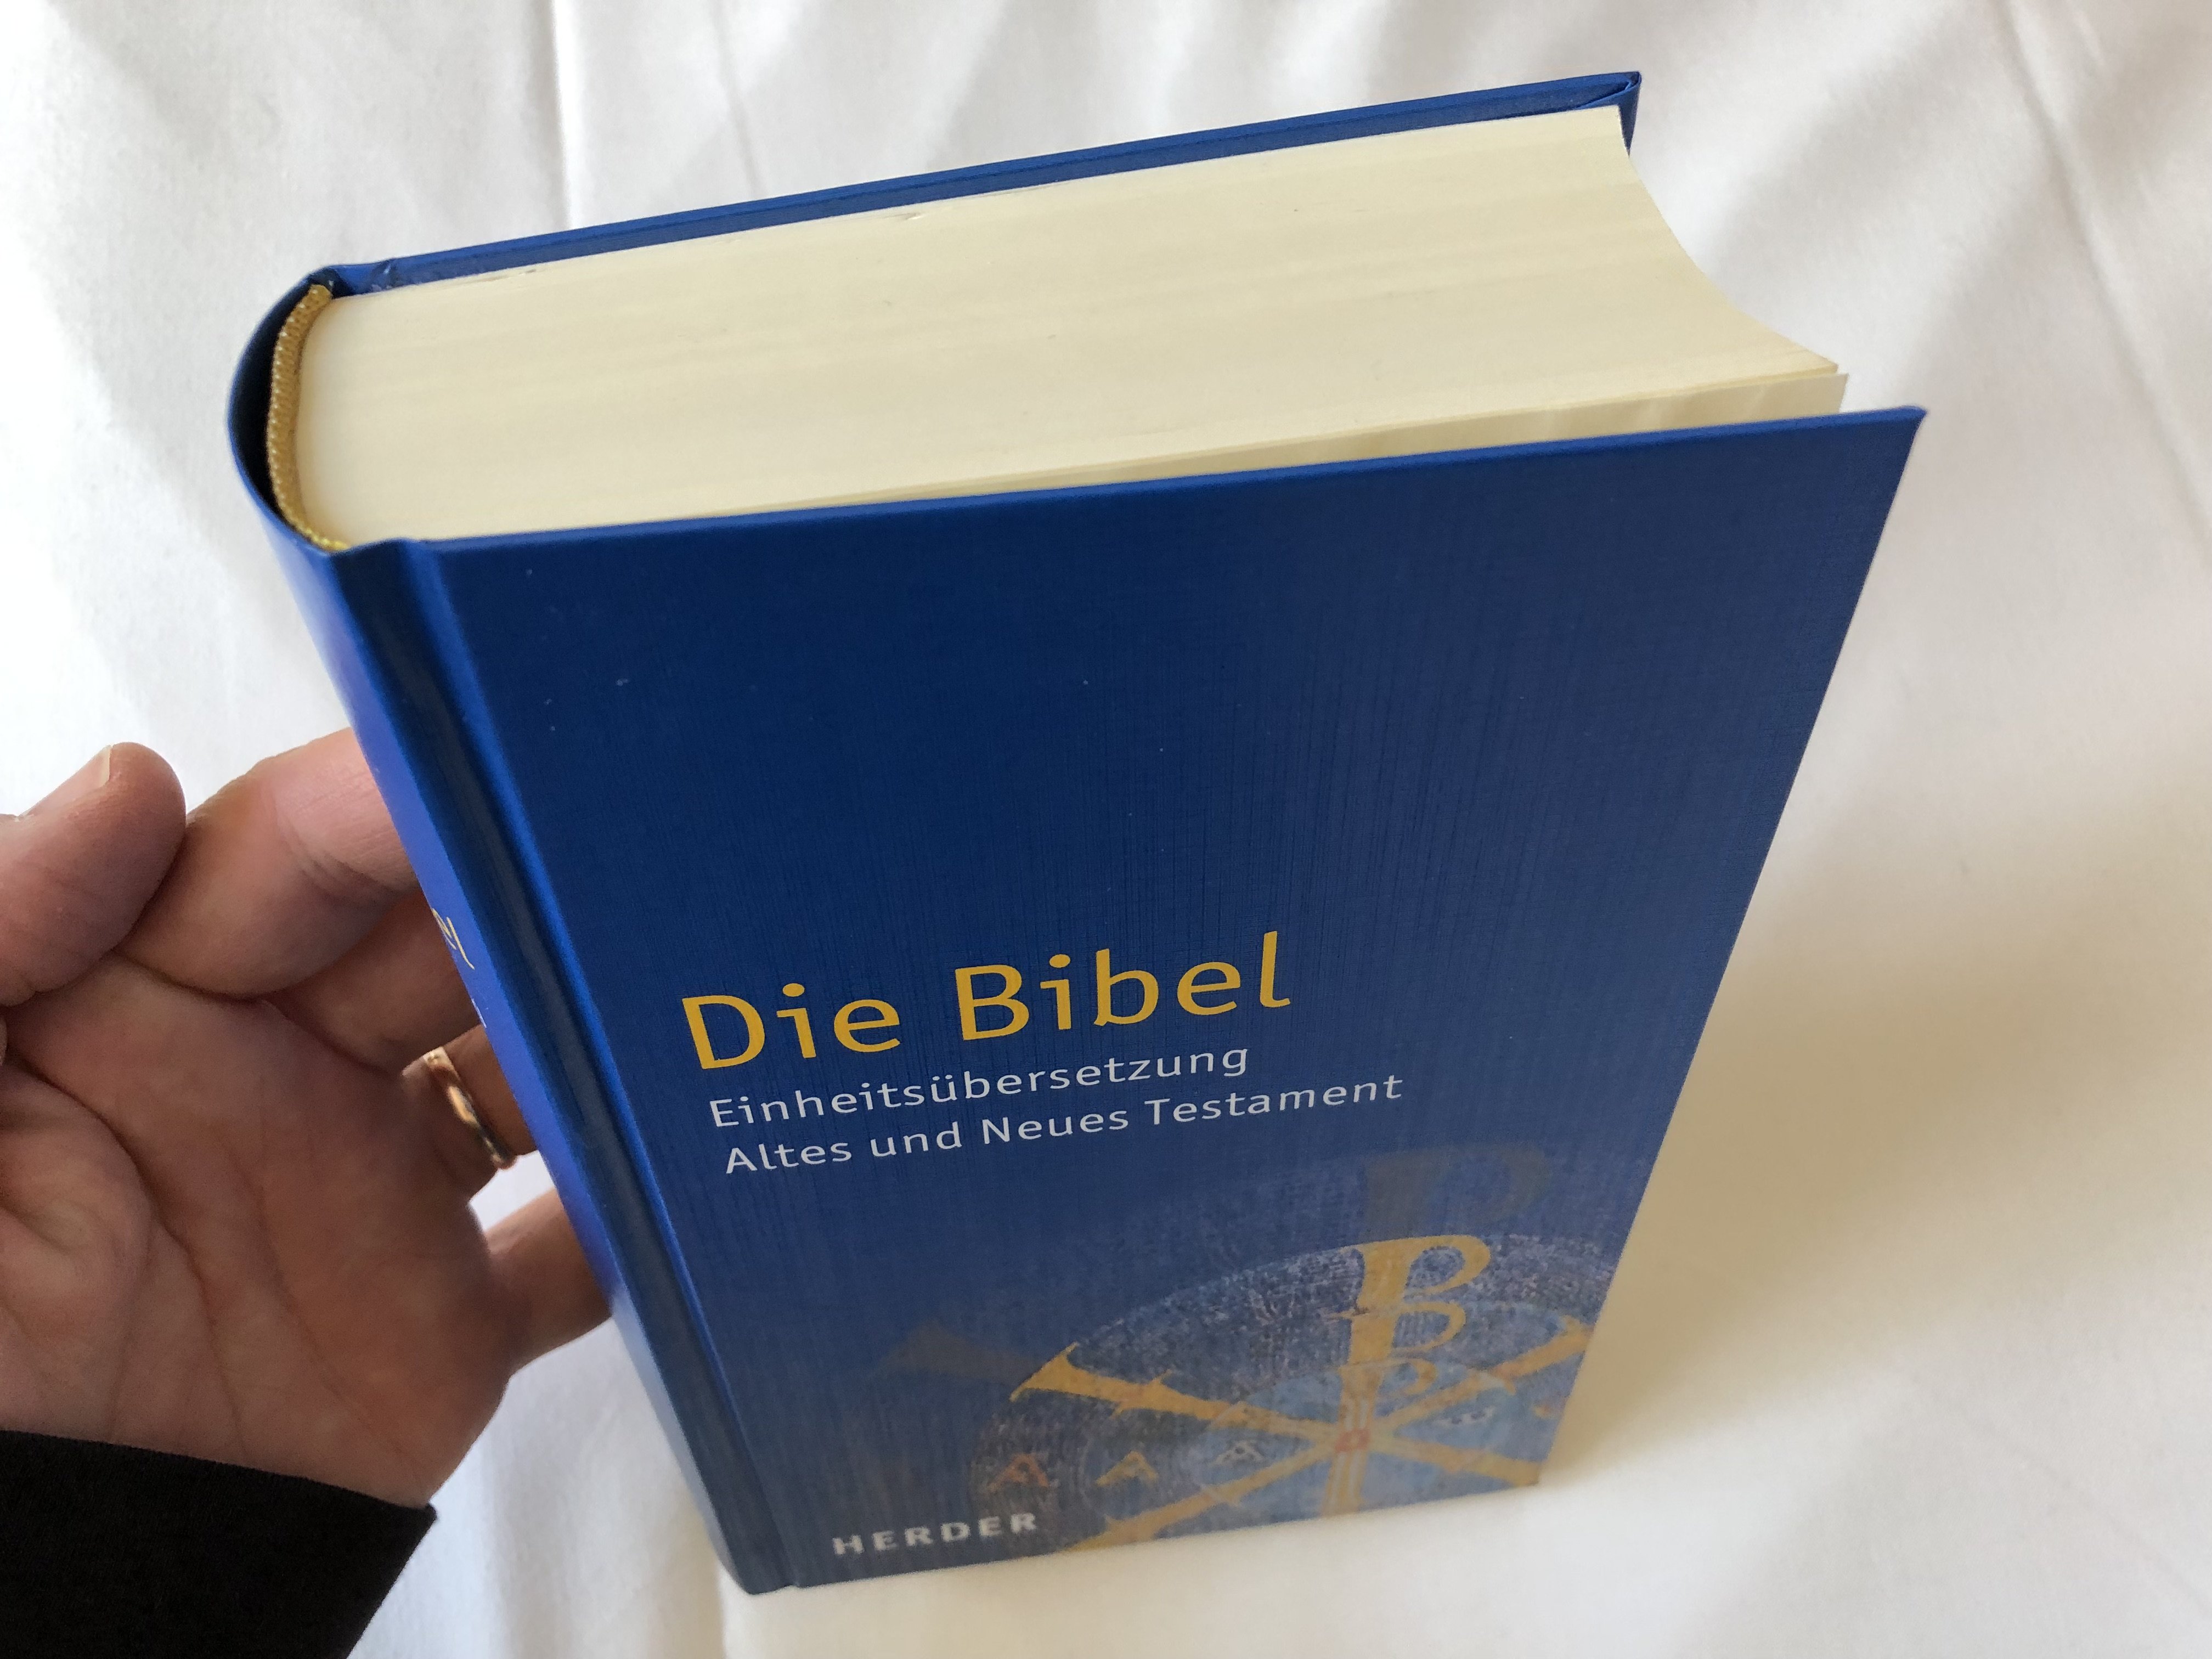 die-bibel-einheits-bersetzung-altes-und-neues-testament-german-language-holy-bible-unitary-translation-contains-deuterocanonical-books-with-book-introductions-maps-notes-bible-history-timetable-hardcover-2016-herde-7471206-.jpg